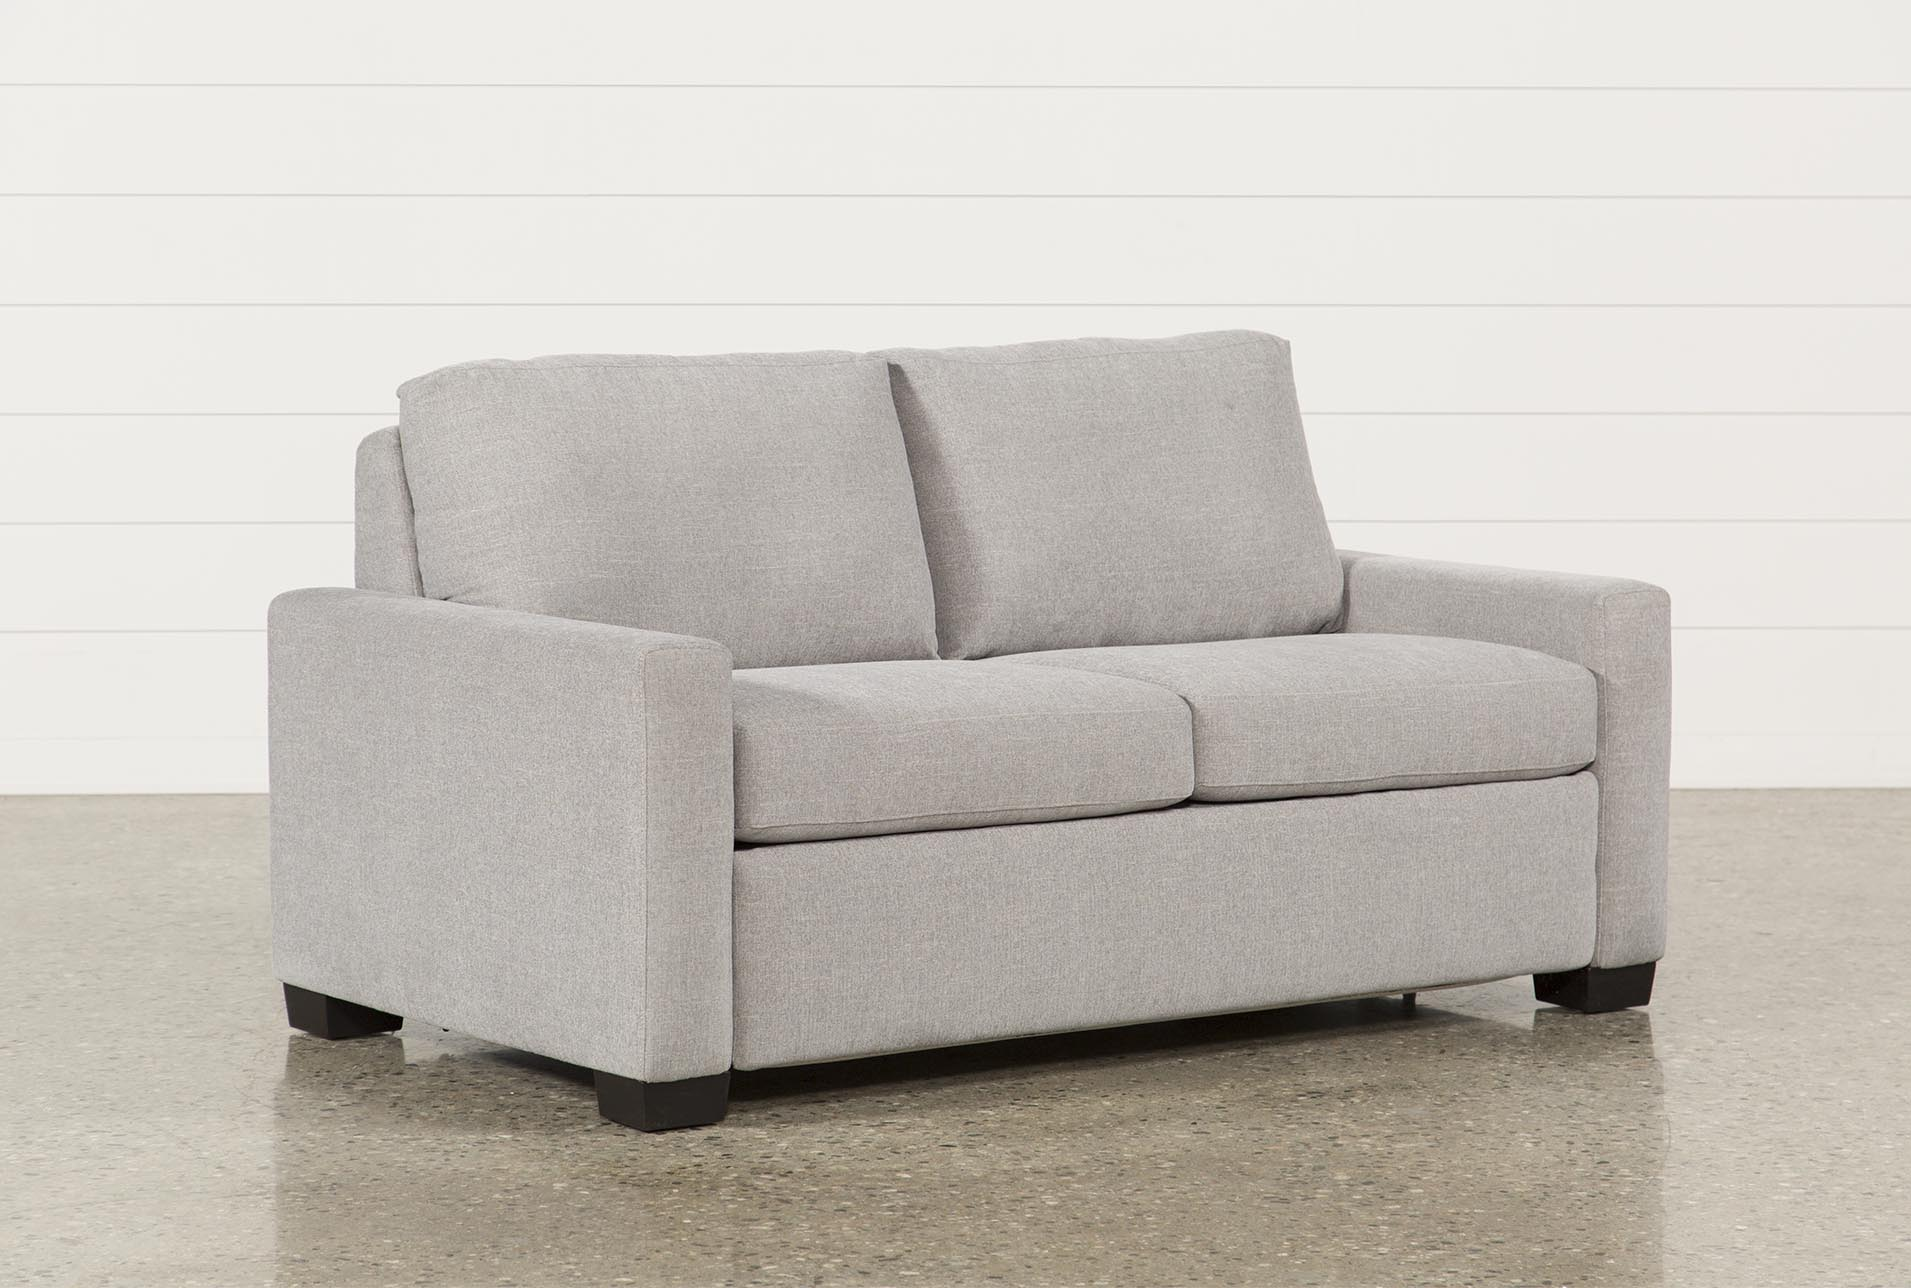 Exceptionnel Added To Cart. Mackenzie Silverpine Full Sofa Sleeper ...